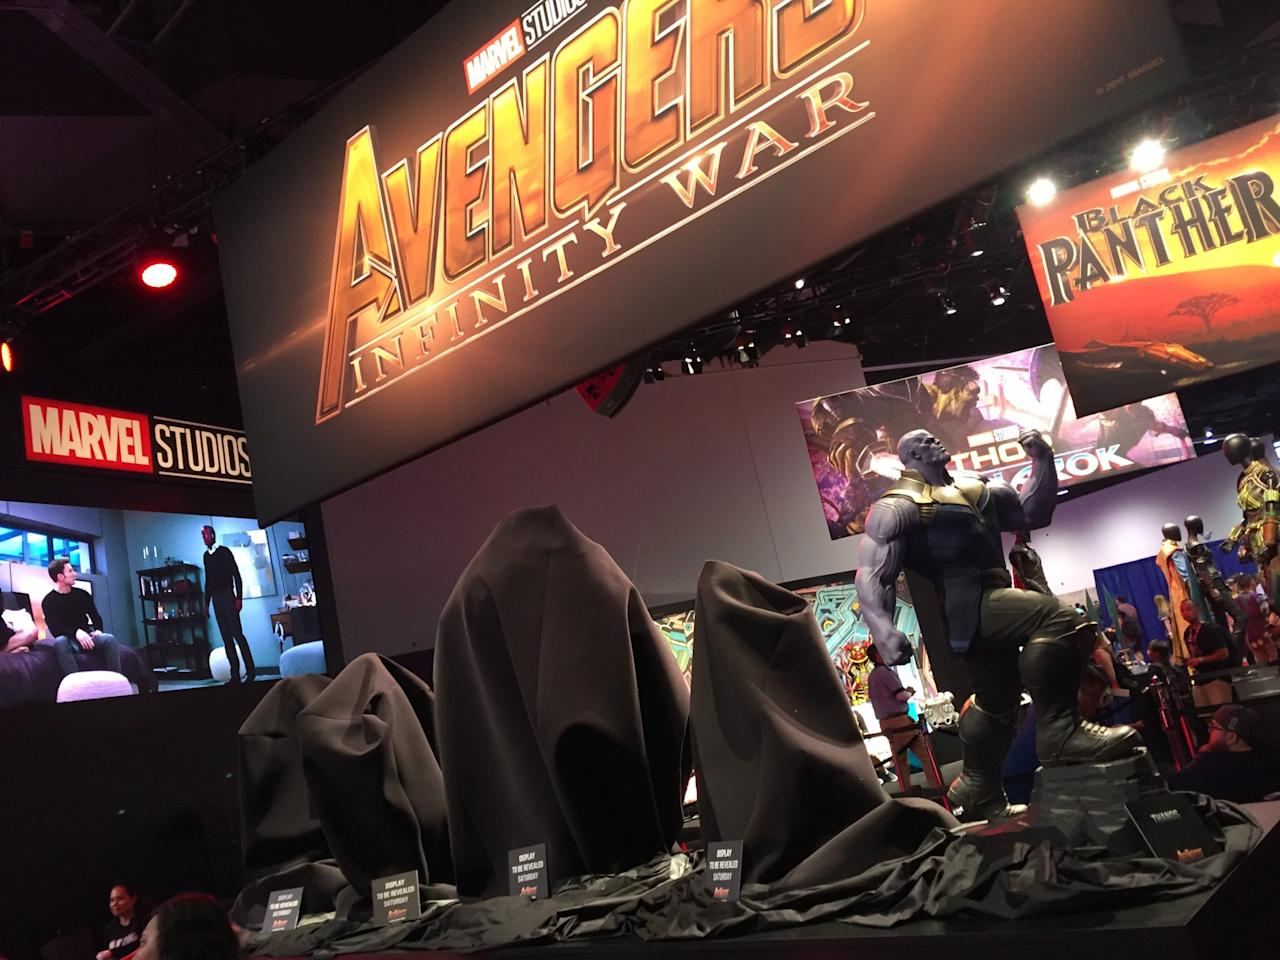 """<p>A rumor spread through the expo that the characters under the shroud behind Thanos were going to be the Fantastic Four. Alas, <a rel=""""nofollow"""" href=""""https://www.yahoo.com/movies/marvel-chief-kevin-feige-debunks-rumor-fantastic-four-joining-mcu-050214060.html"""">that turned out not to be the case</a>. (Photo: Marcus Errico/Yahoo Movies) </p>"""